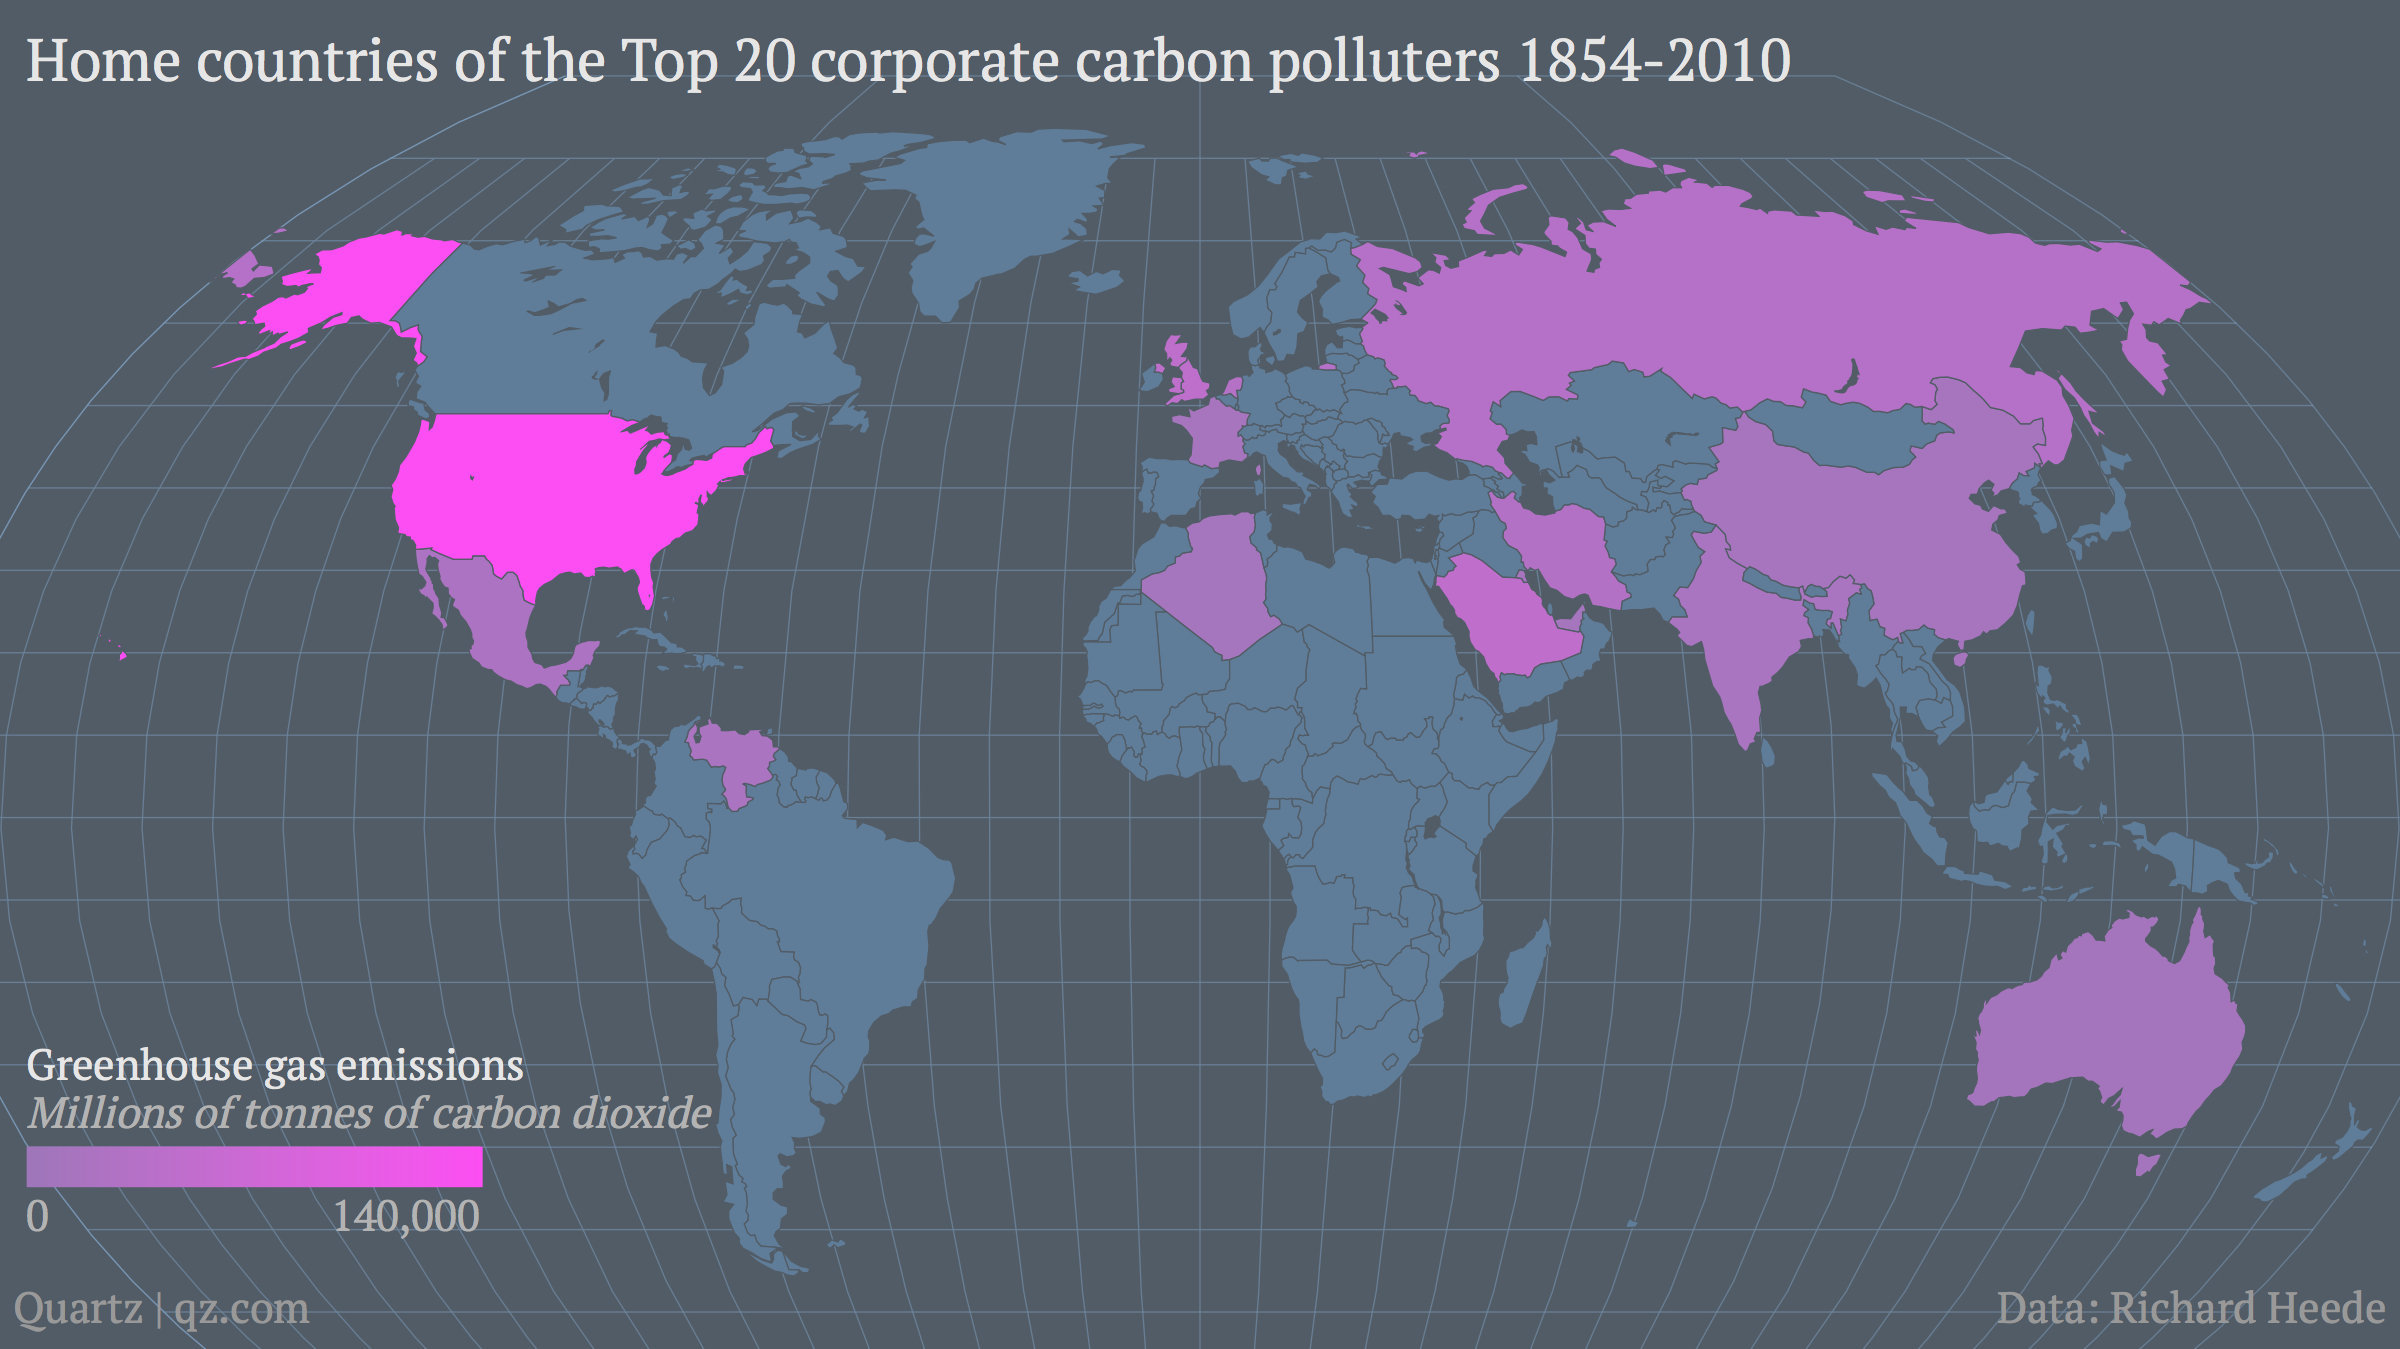 top 20 corporate carbon polluters 1854-2010